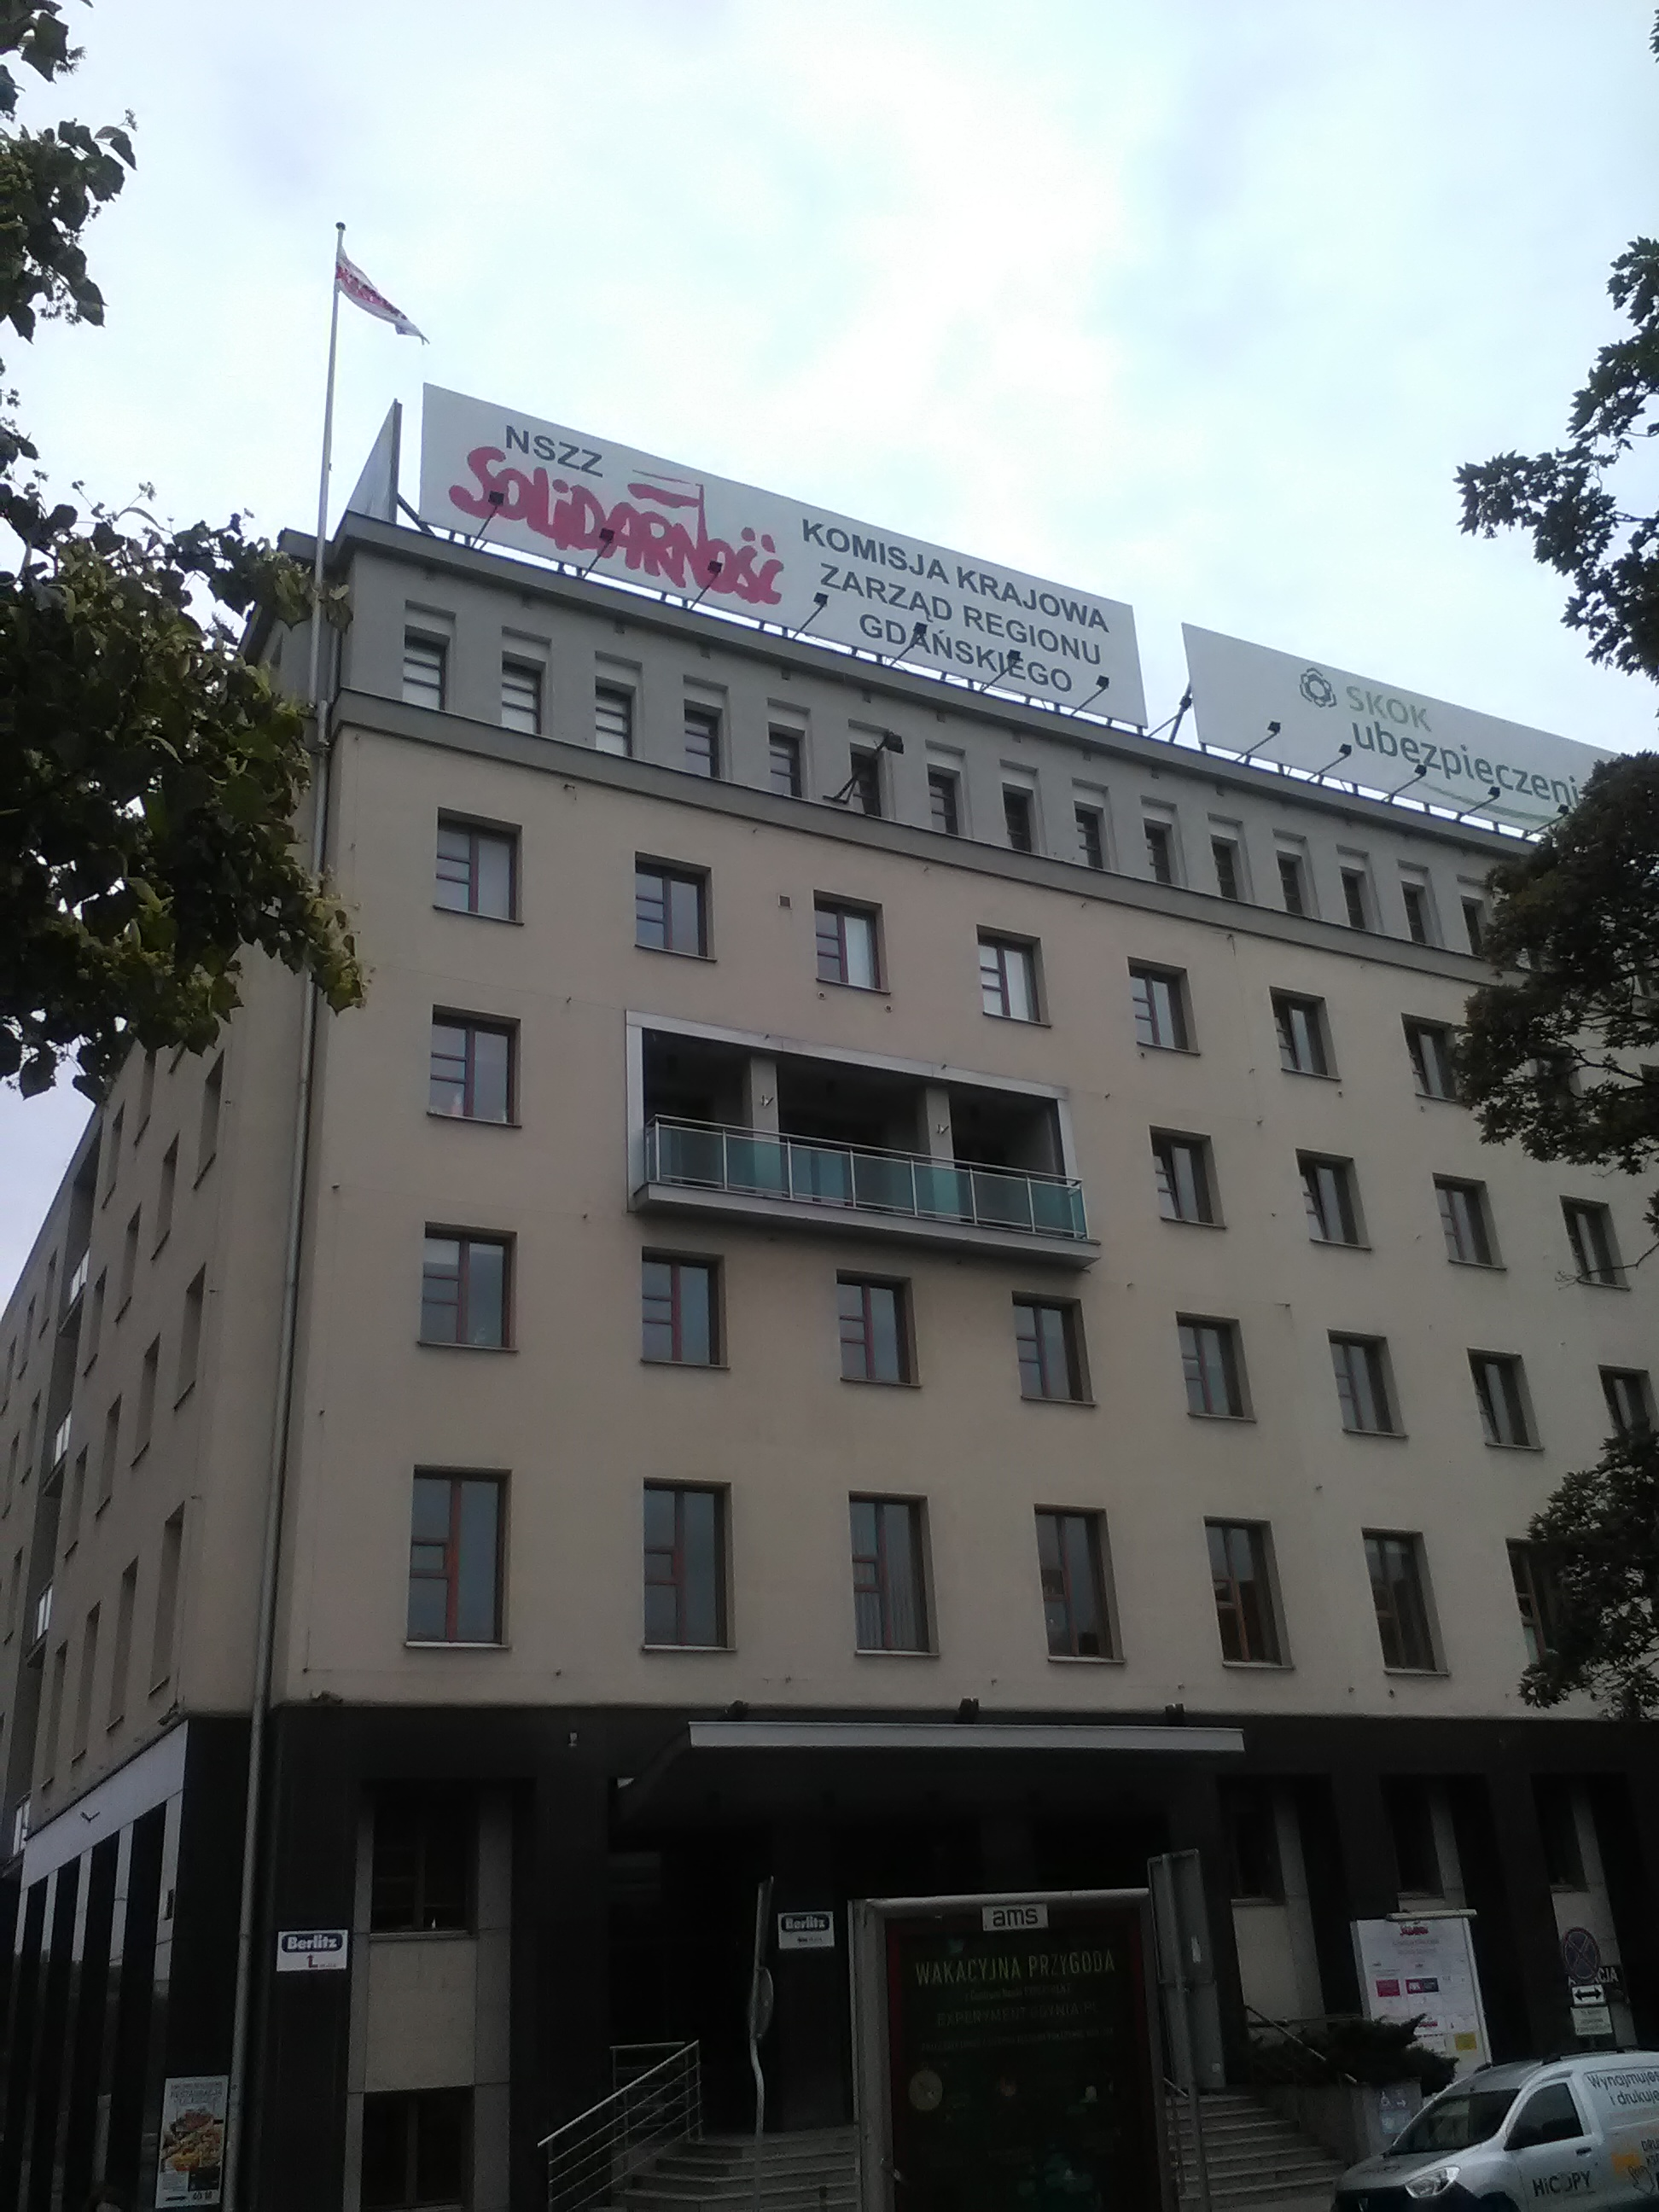 The building of the National Commission of Solidarność Trade Union in Gdańsk, Poland. View from the outside.